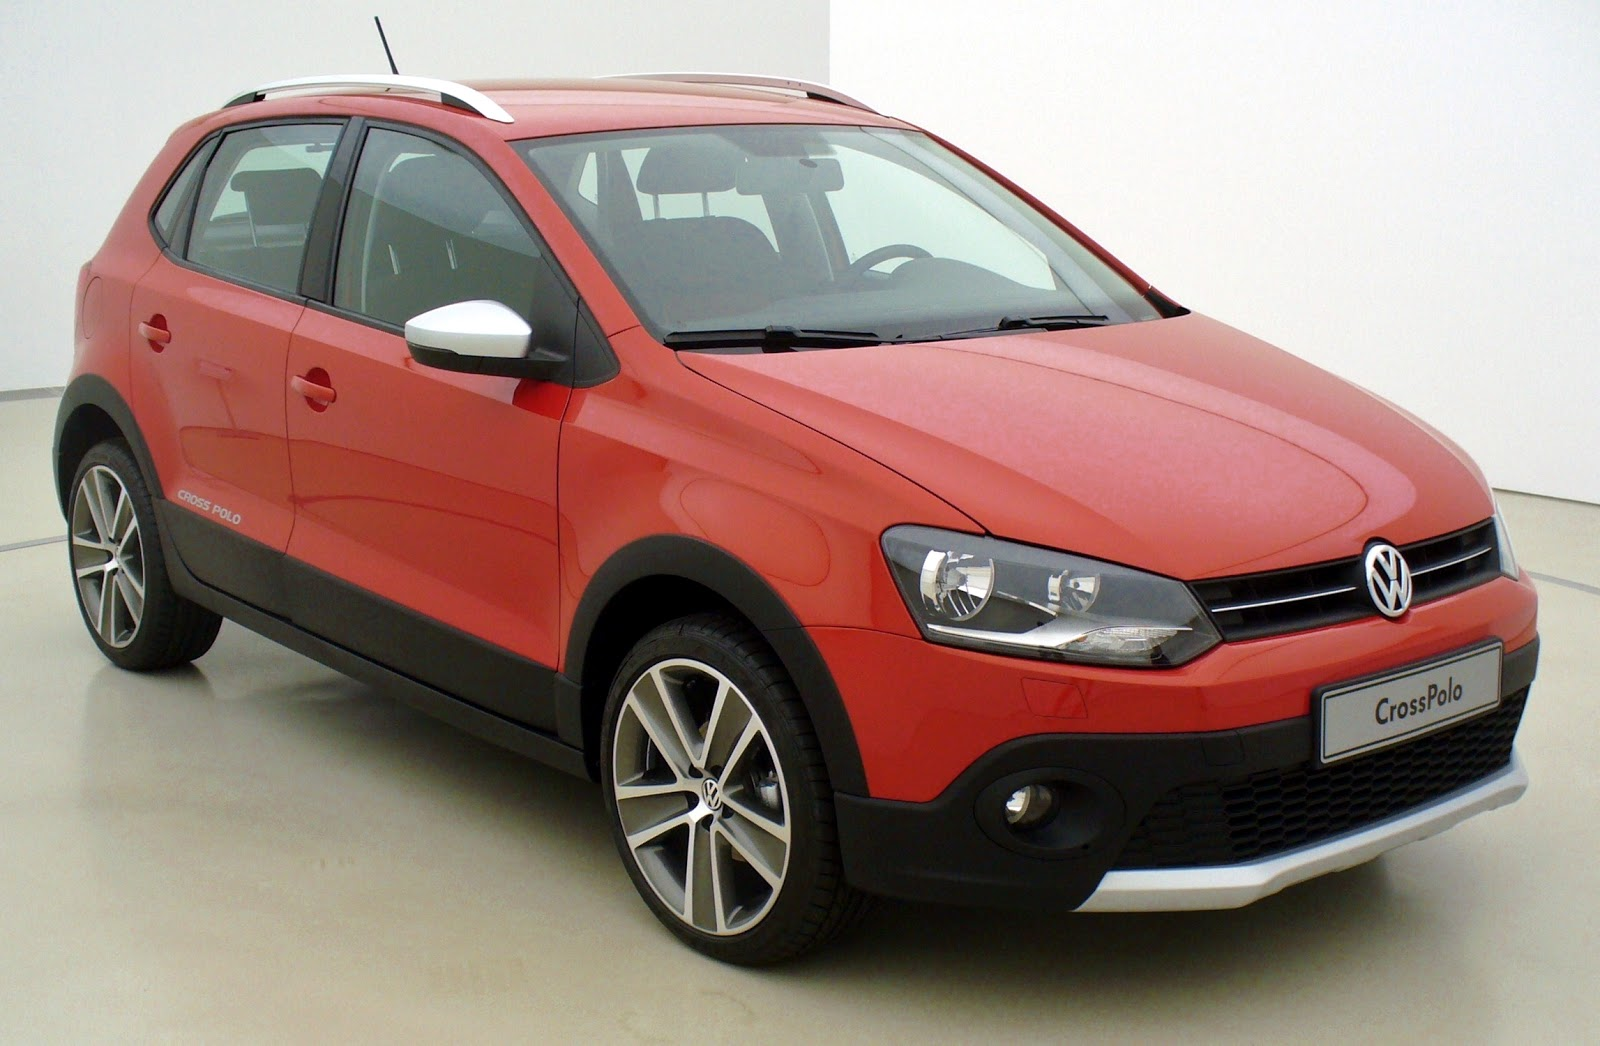 superdrive volkswagen cross polo. Black Bedroom Furniture Sets. Home Design Ideas